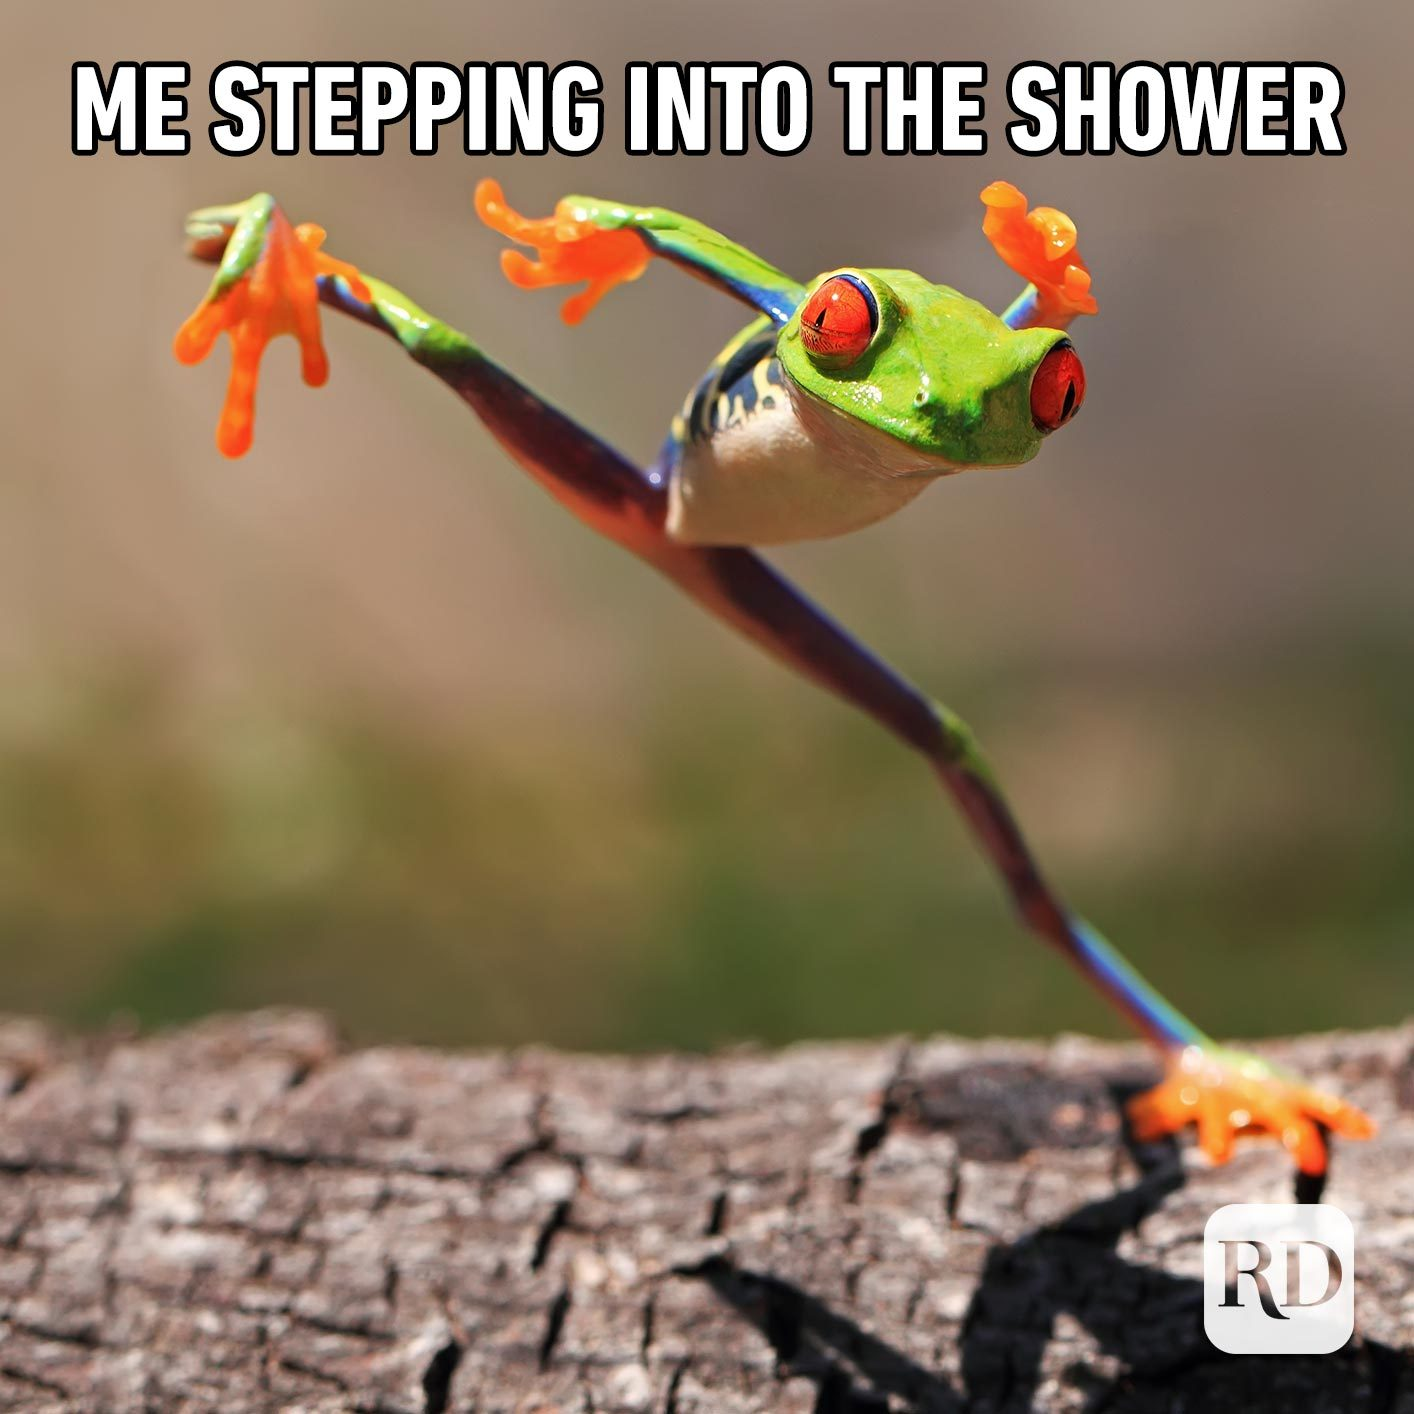 Frog leaping. Meme text: Me stepping into the shower